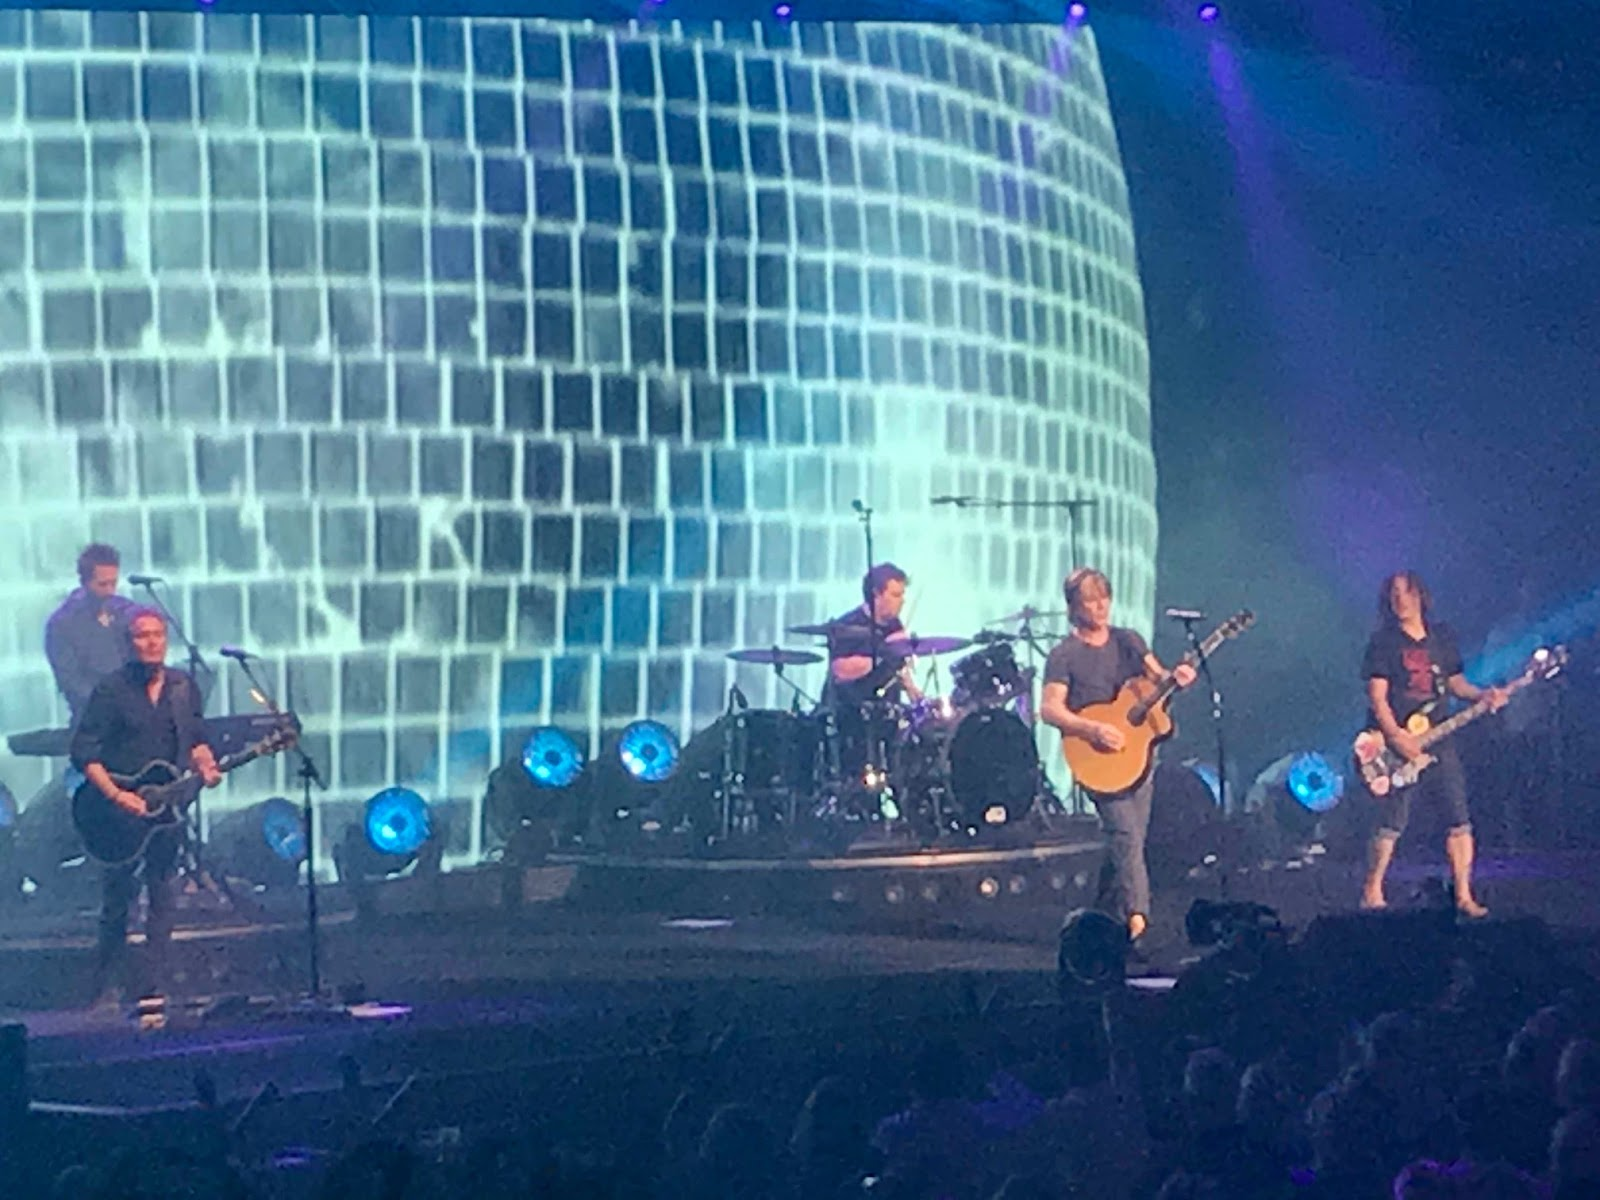 JP's Music Blog: Train And The Goo Goo Dolls Join Forces For A Night